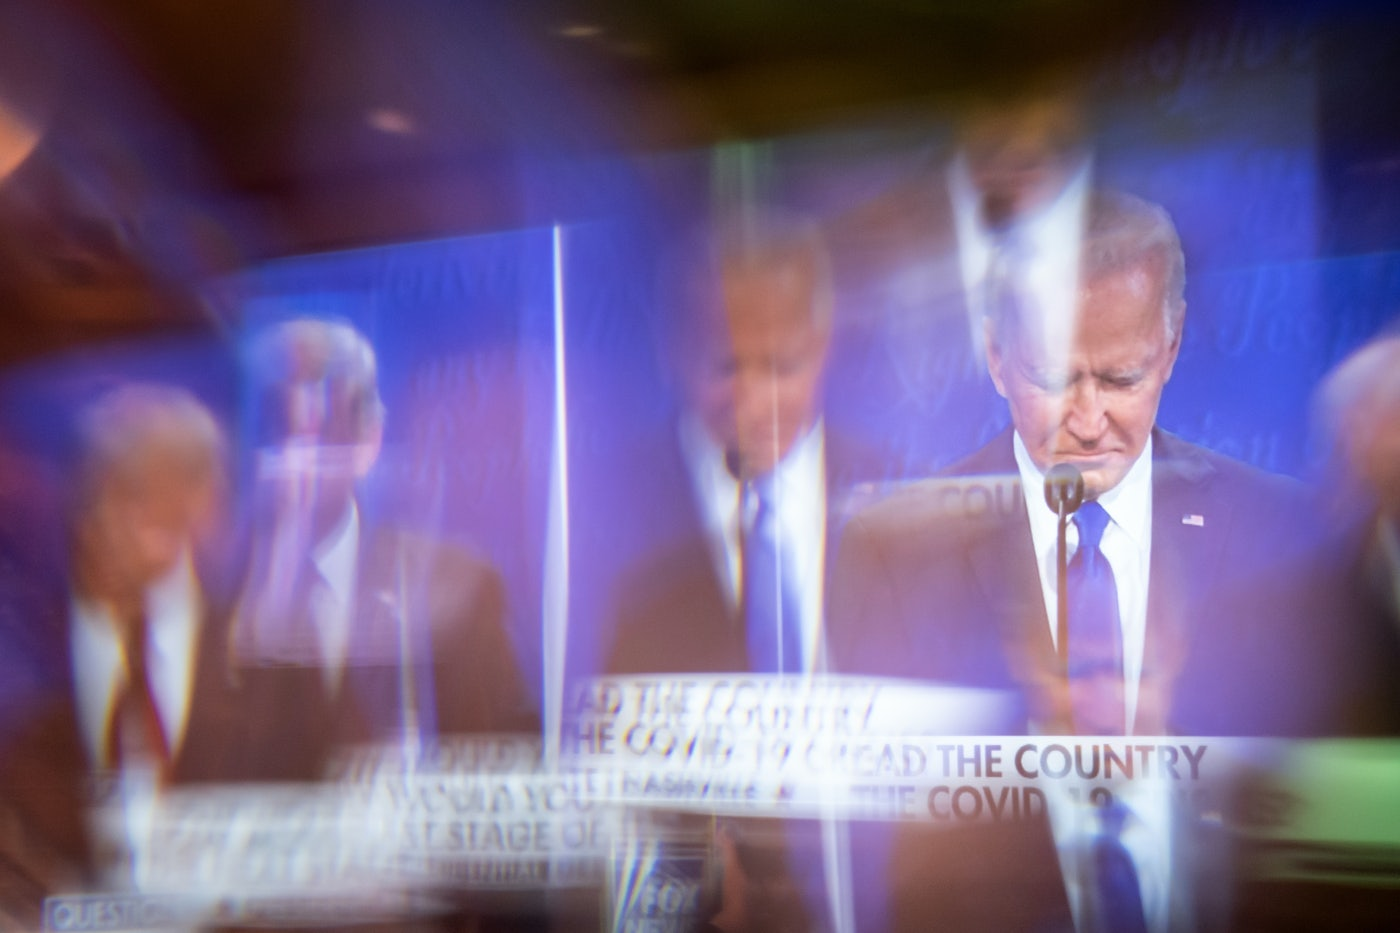 Former Vice President Joe Biden is seen on-screen through a window at a presidential debate watch party.